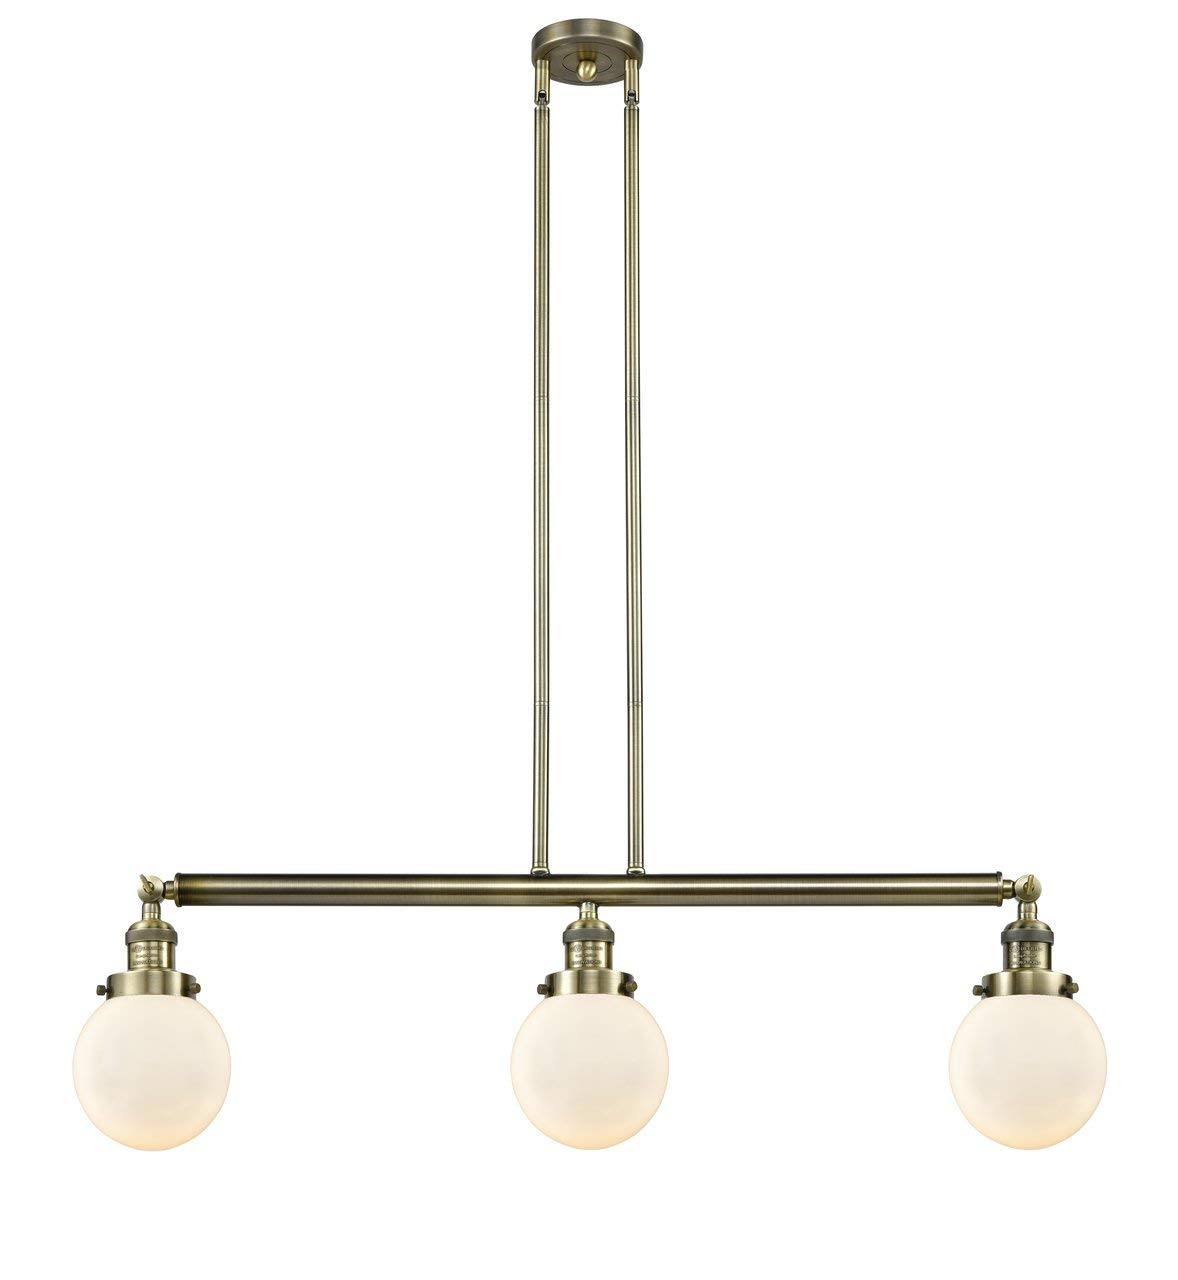 INNOVATIONS LIGHTING 213-AB-S-G201-6-LED 3 Light Vintage Dimmable LED Beacon 38 inch Island Light